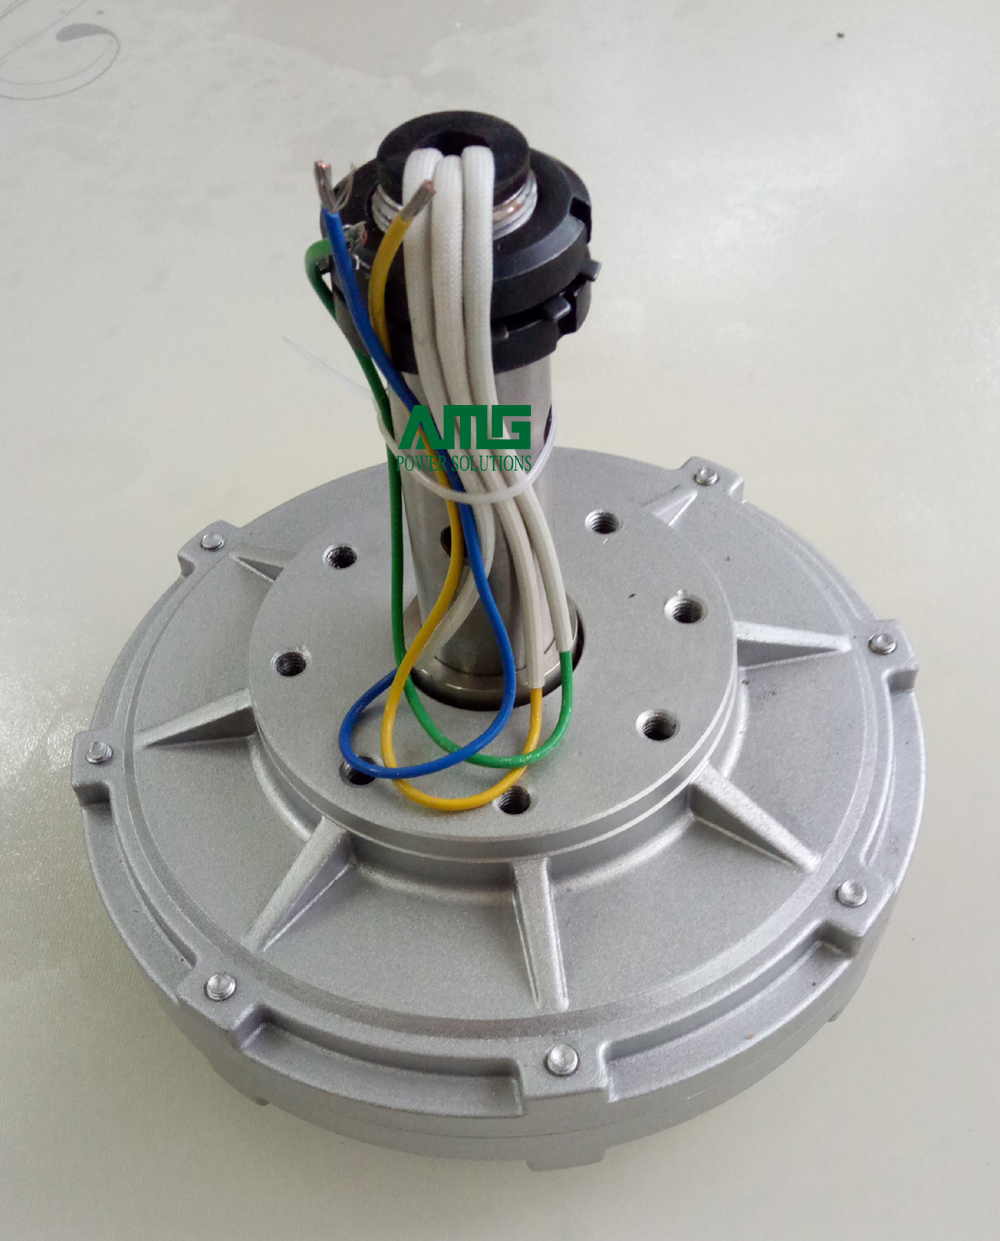 100W 130/200/300/500RPM 12/24/48VDC Low RPM Low Start Torque Vertical Alternator, inner/outer rotor, double shaft optional